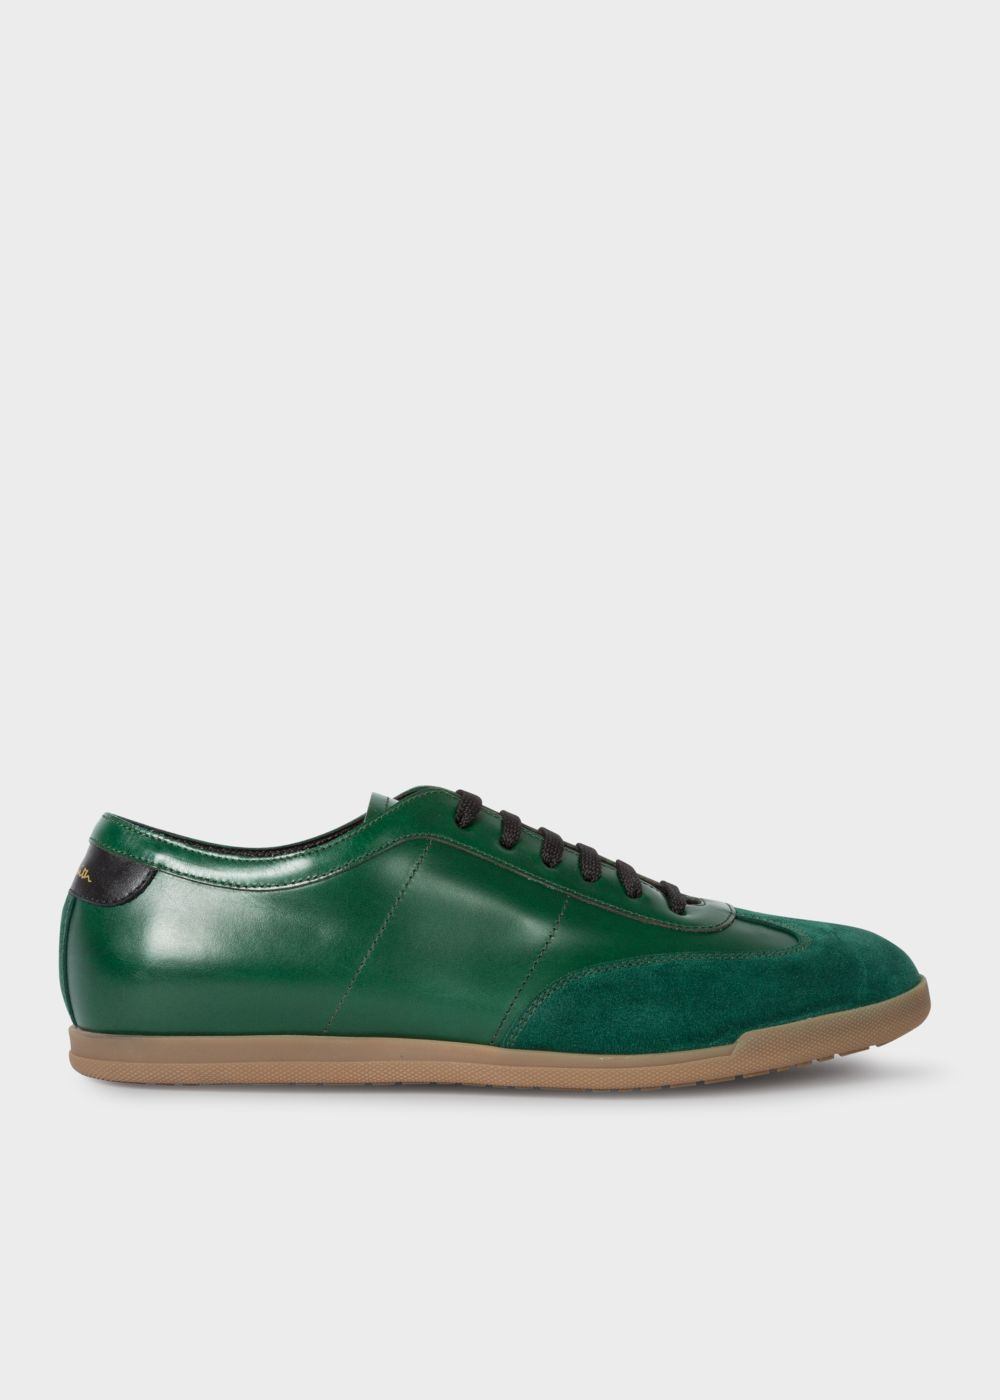 Paul Smith Men's Green Leather 'Holzer' Trainers